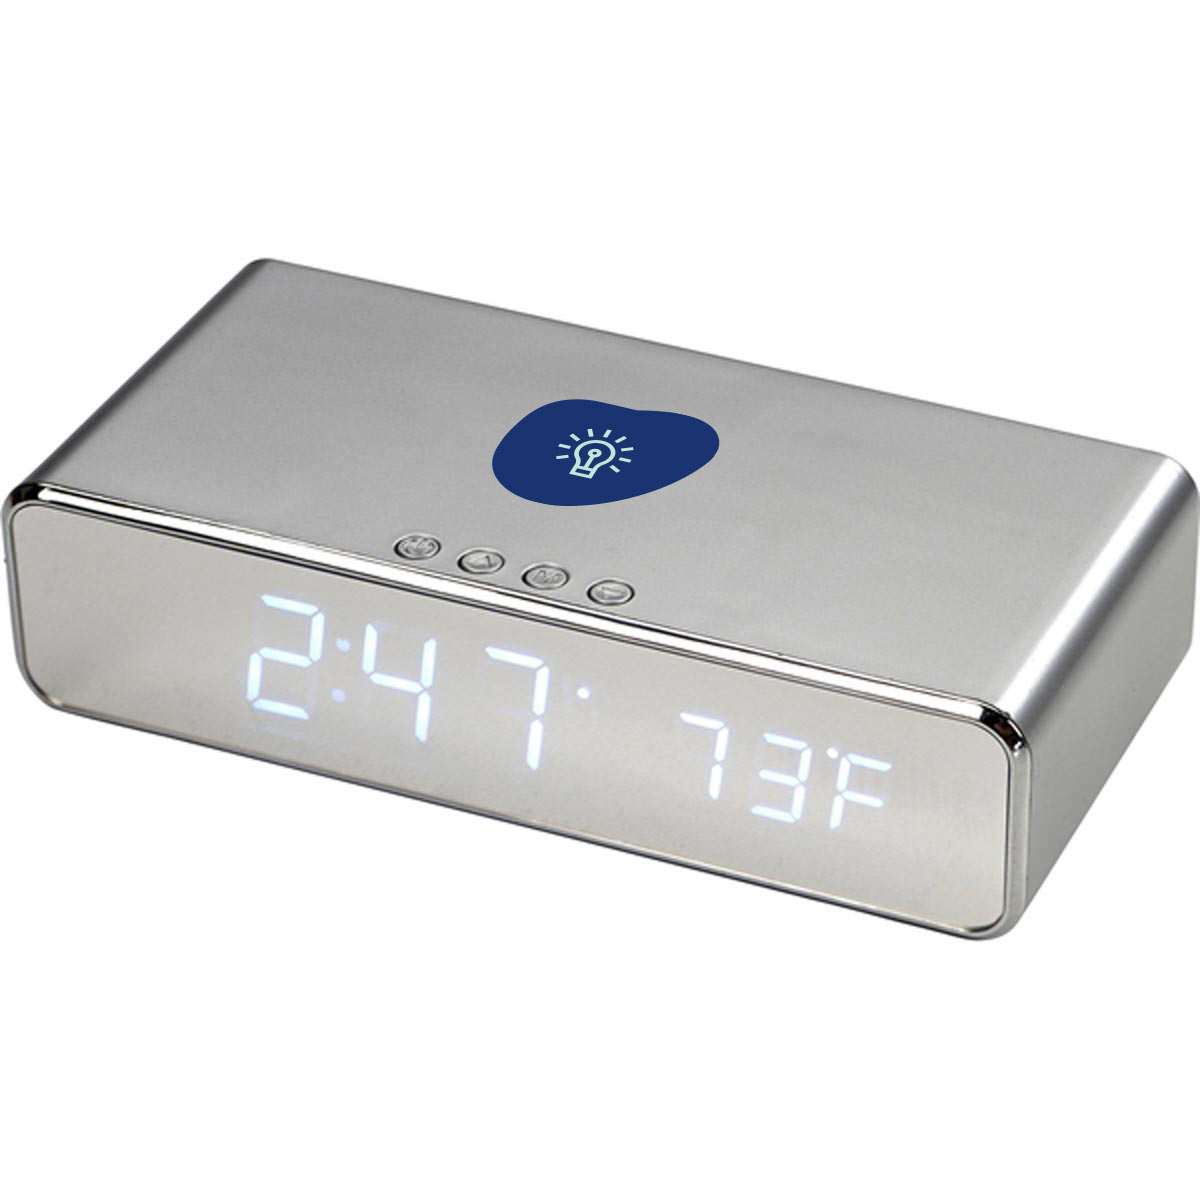 267826 kordal desk clock two color imprint one location